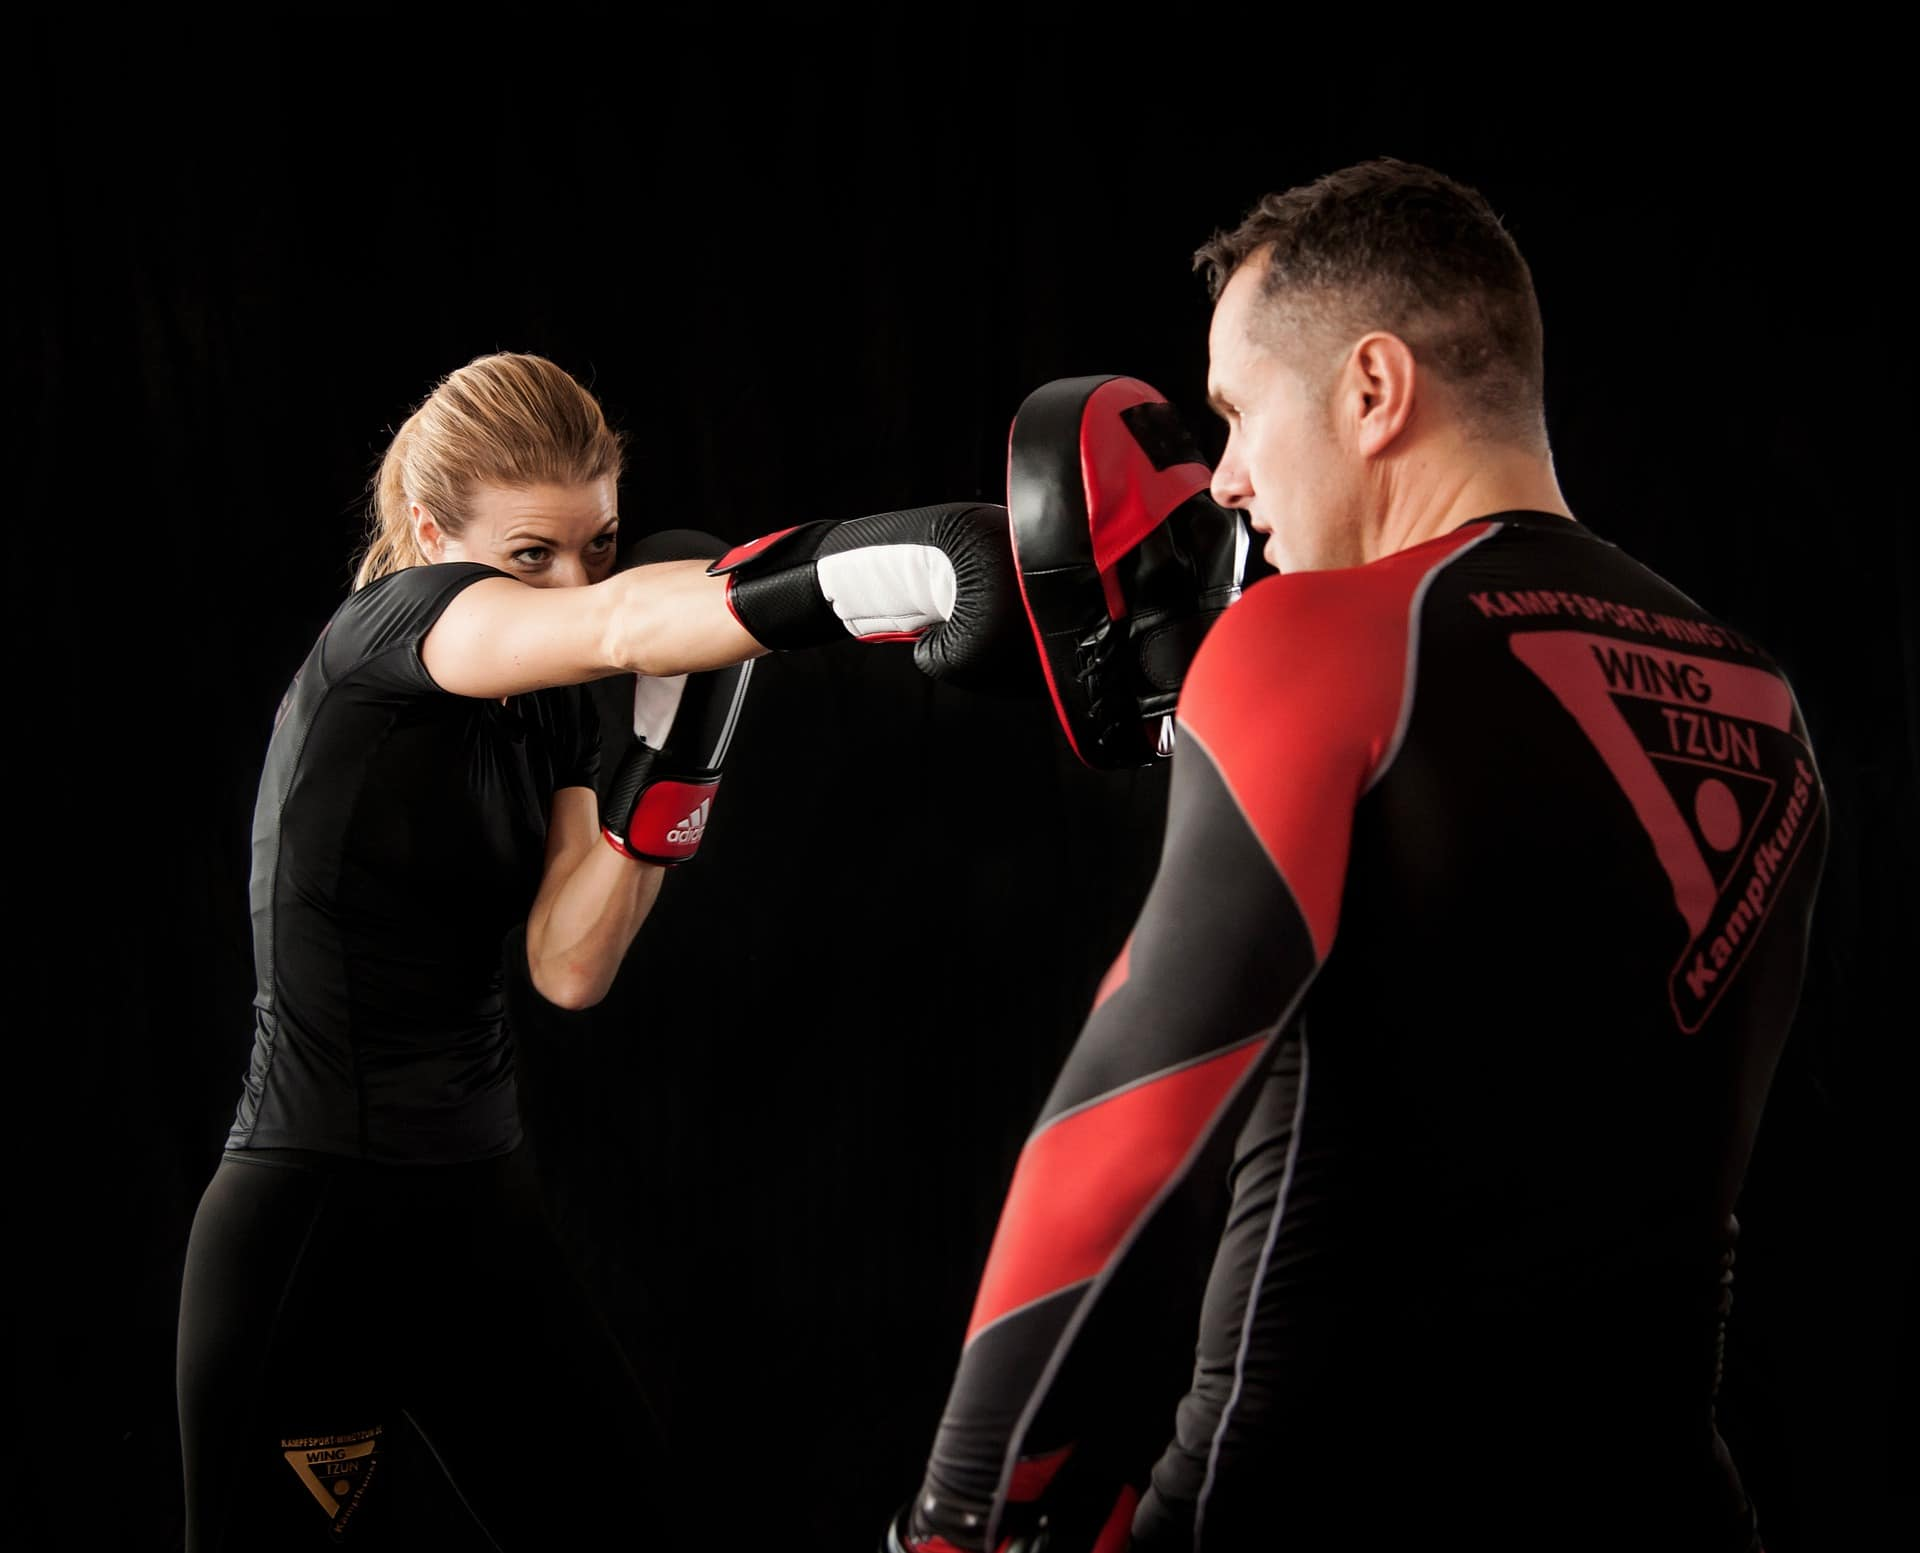 a woman is throwing a punch to her trainer